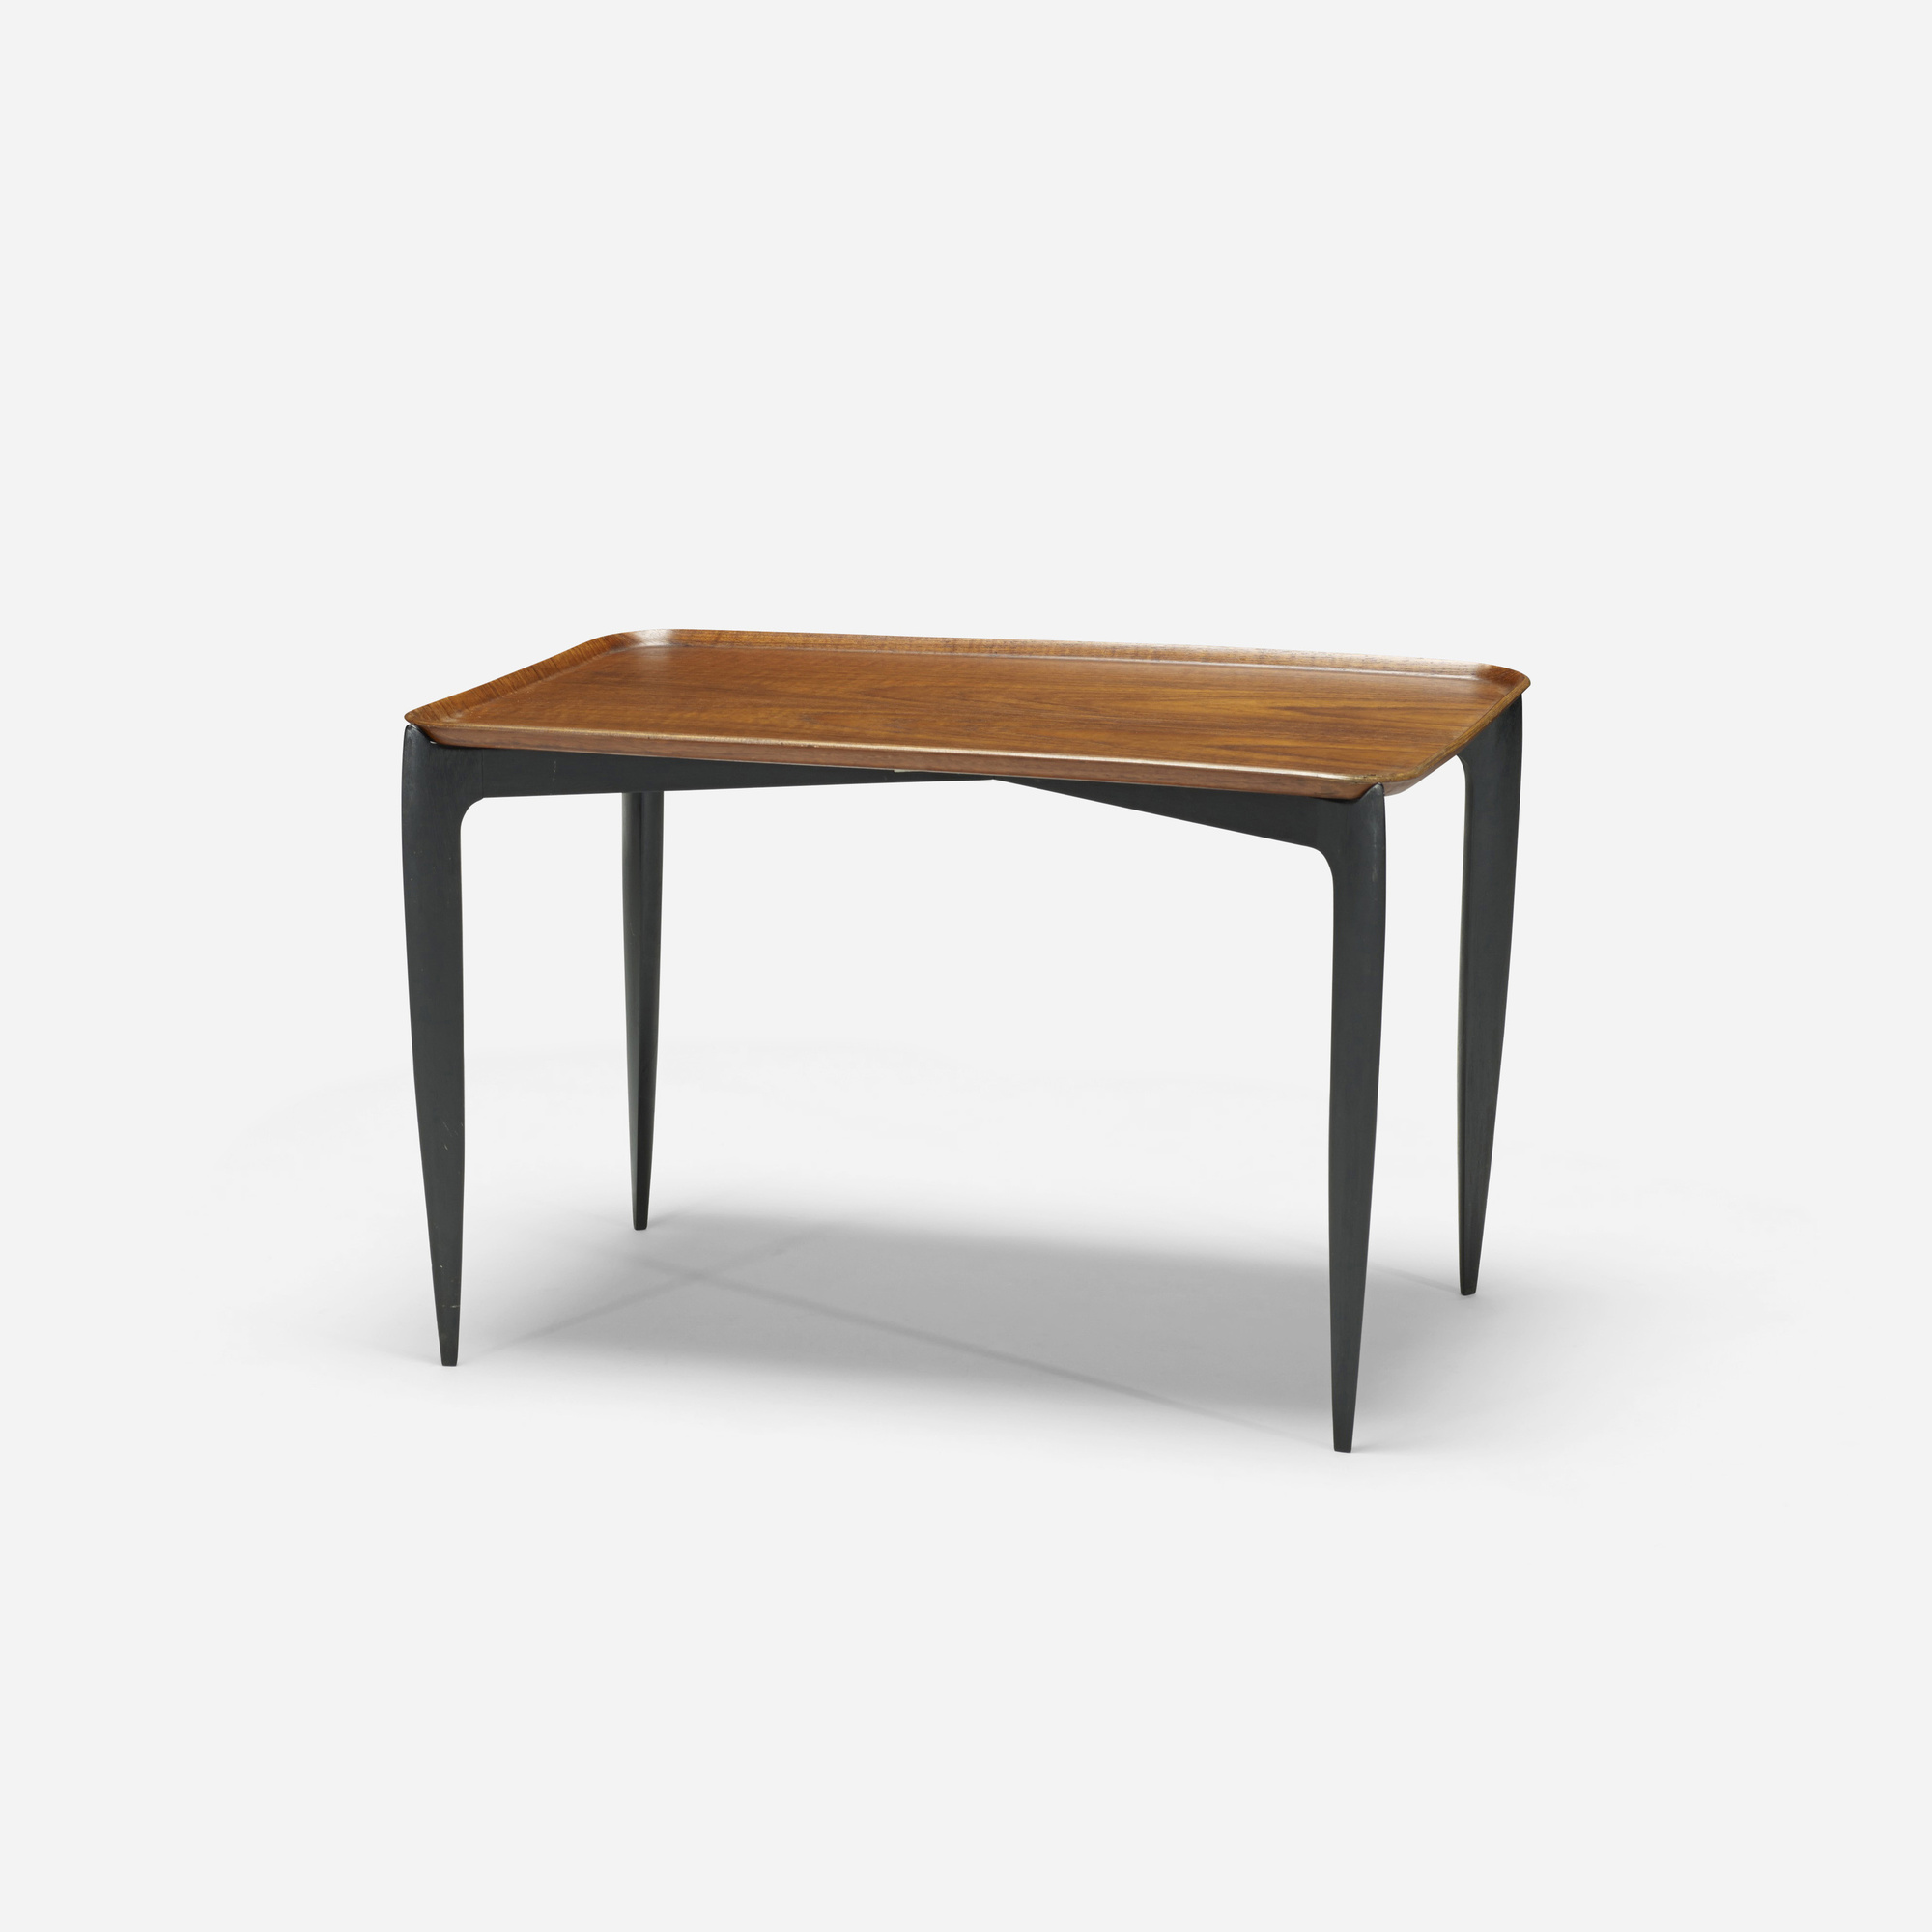 796: Sven Aage Willumsen and H. Engholm / tray table (1 of 3)